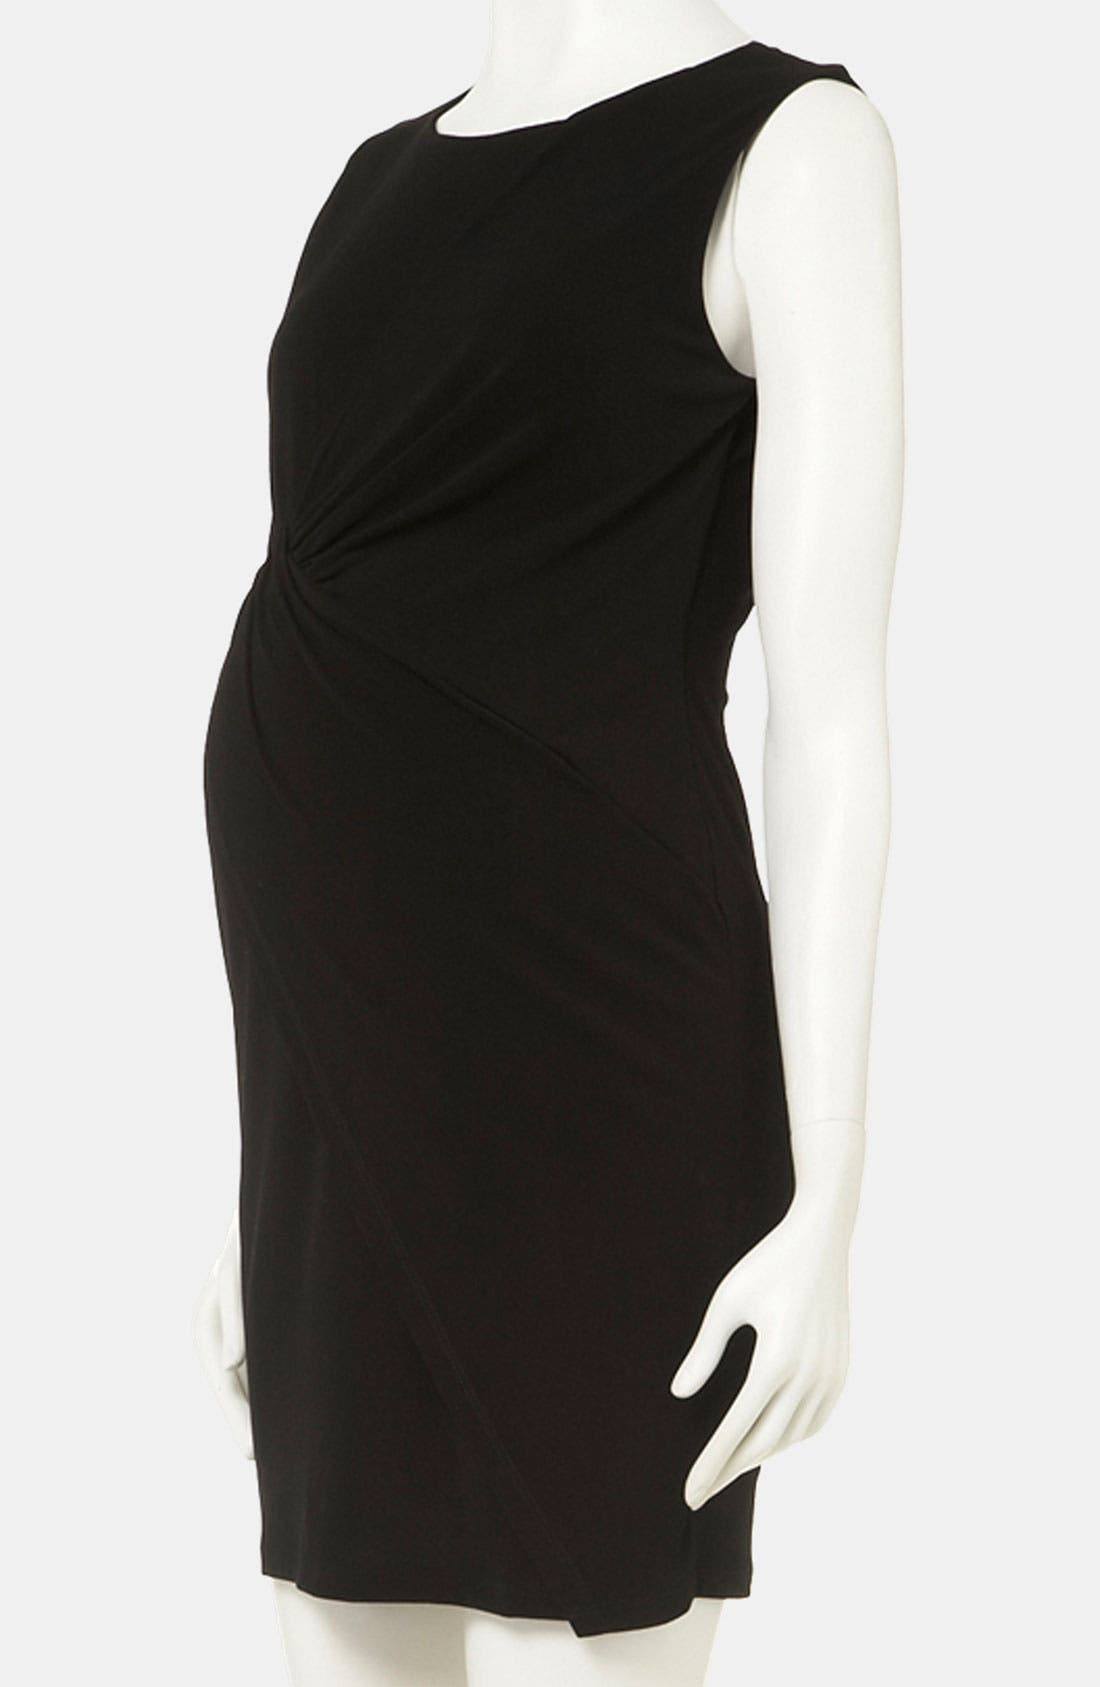 Main Image - Topshop Knot Detail Maternity Dress